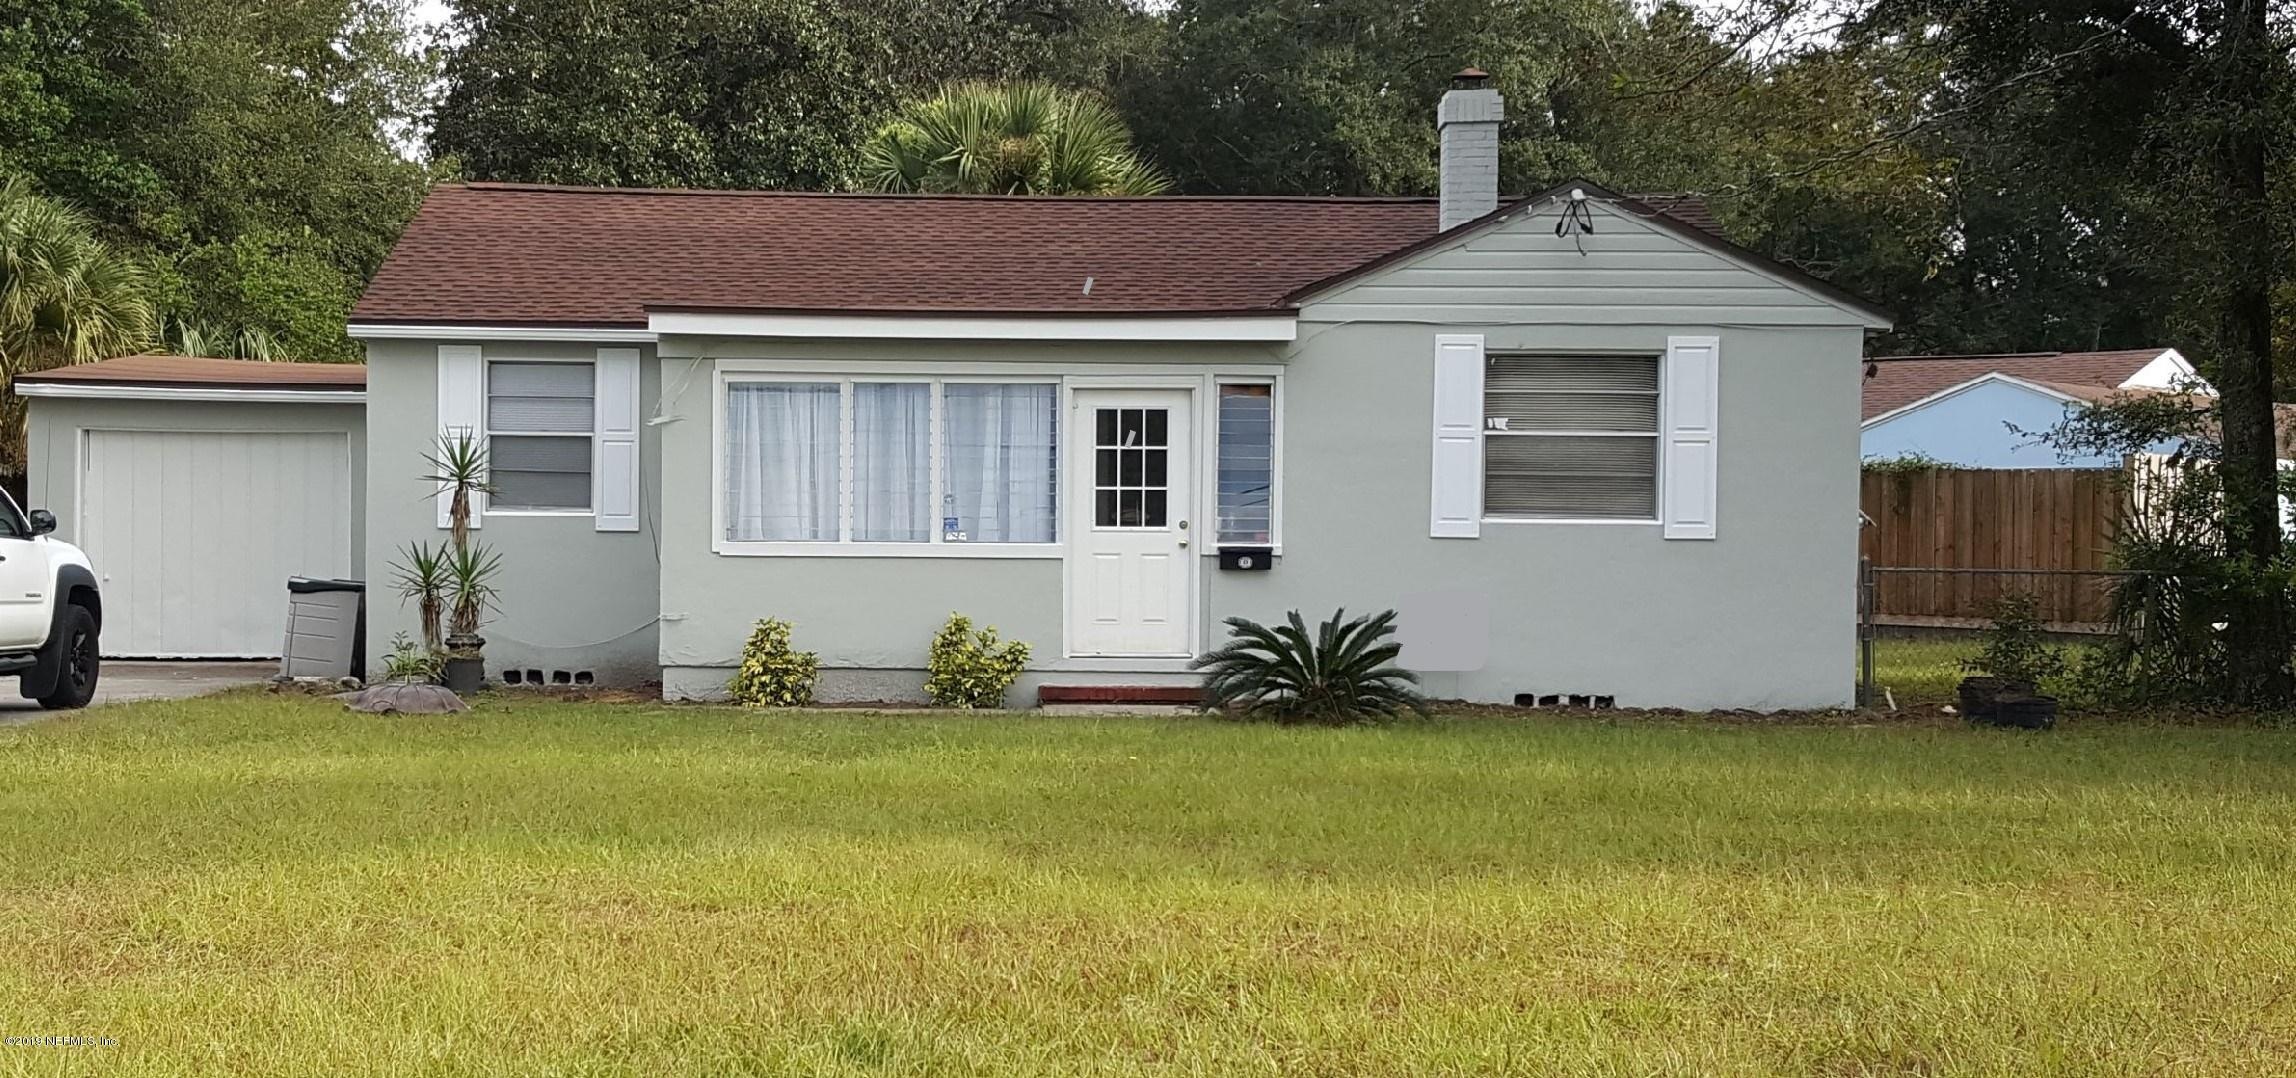 2305 SOUTHSIDE, JACKSONVILLE, FLORIDA 32216, 3 Bedrooms Bedrooms, ,1 BathroomBathrooms,Residential - single family,For sale,SOUTHSIDE,985571